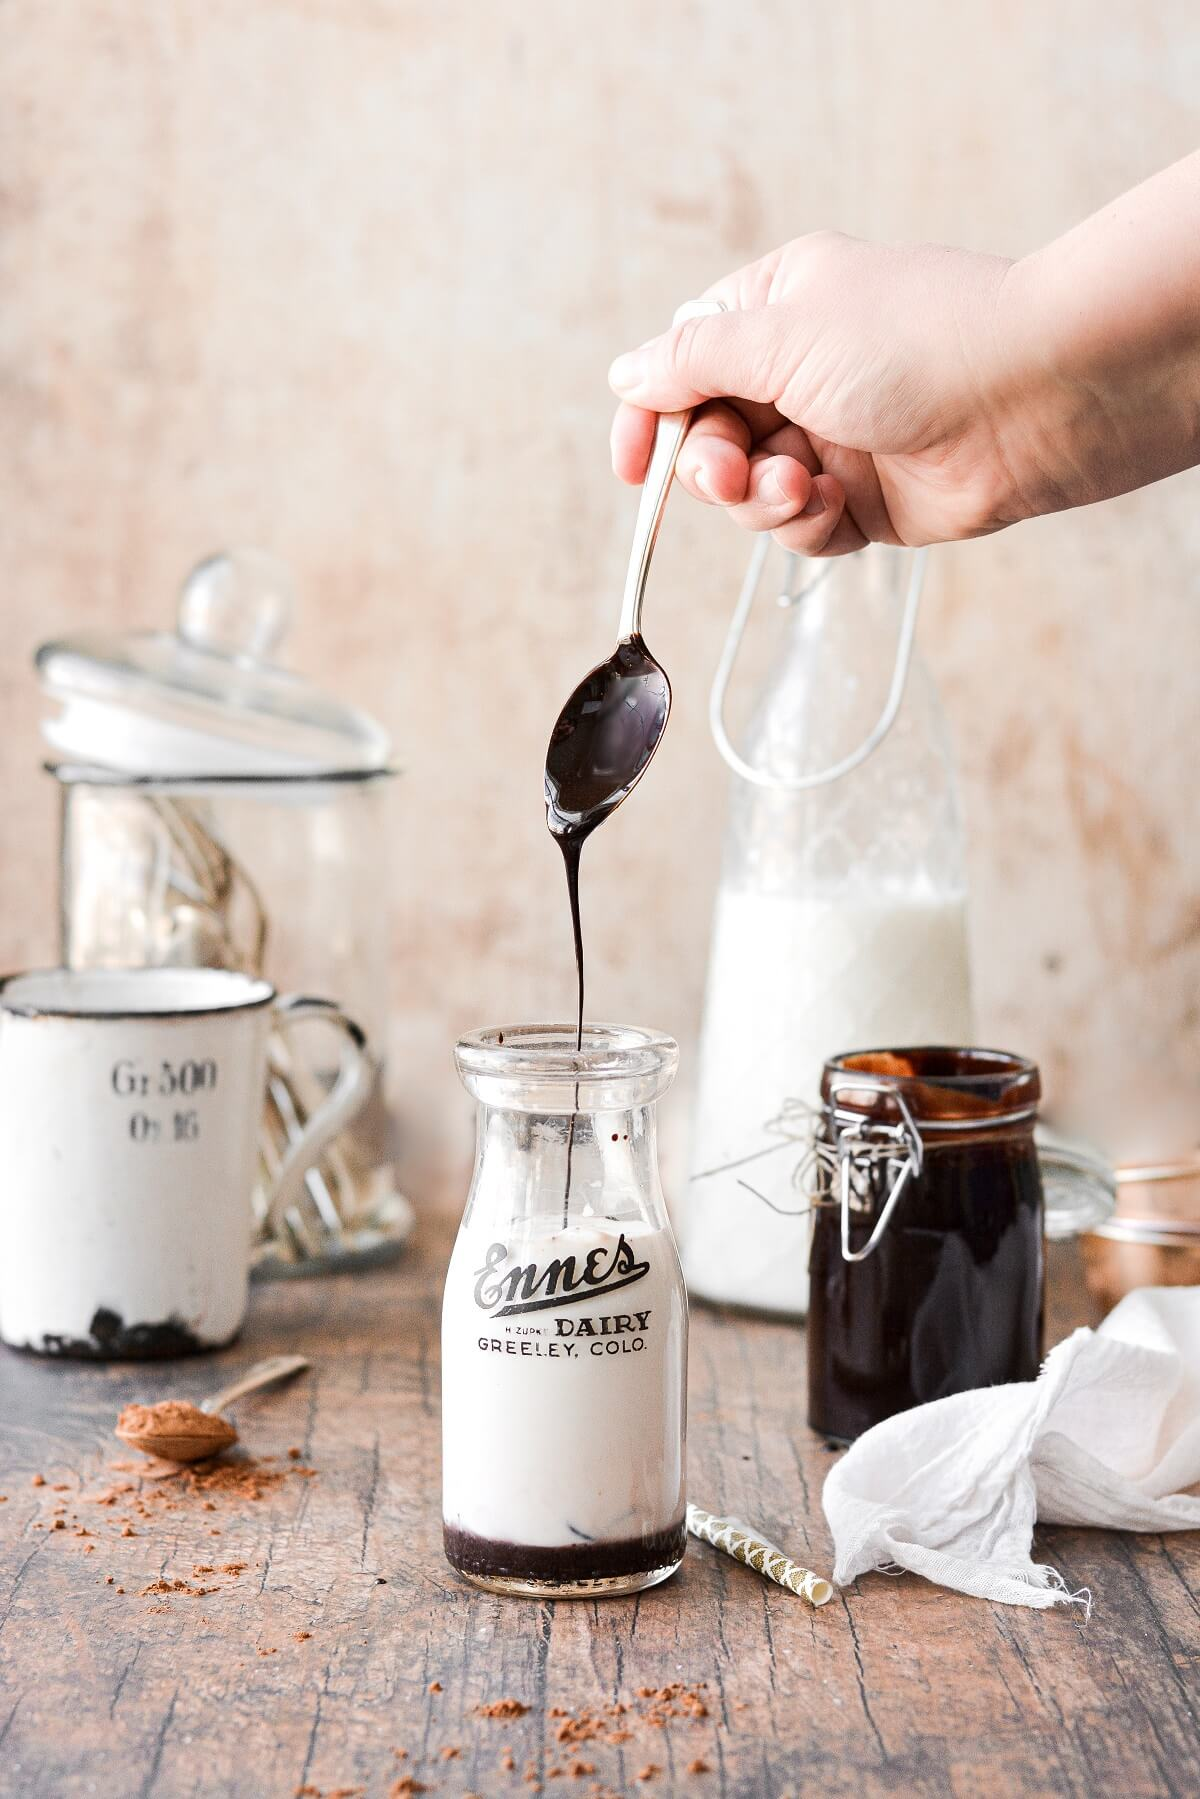 A spoonful of homemade chocolate syrup, drizzled into a vintage milk jar.